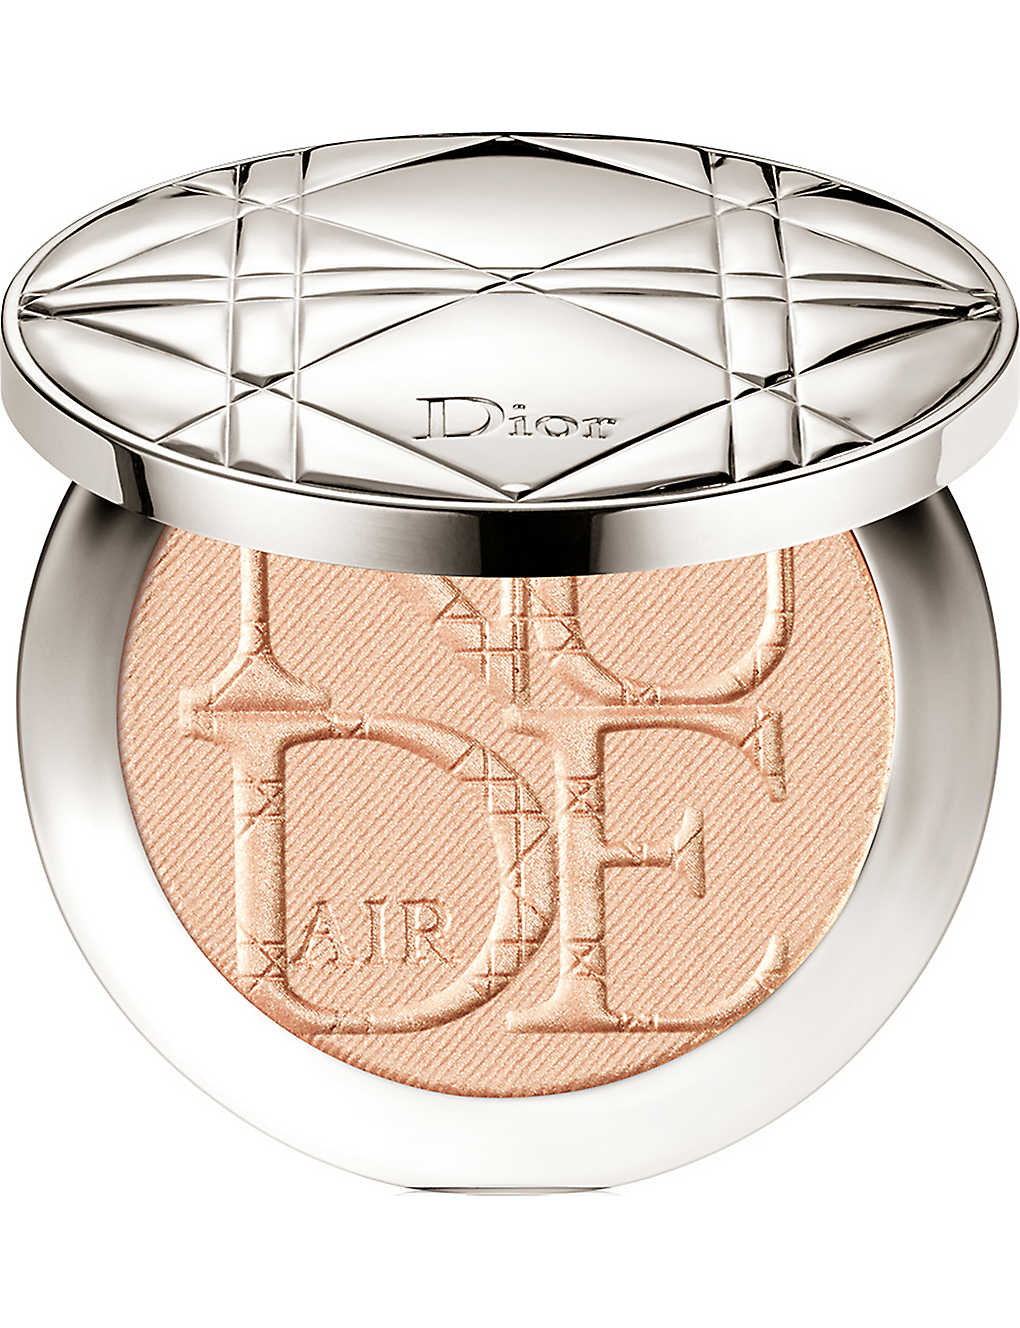 Diorskin Nude Air Luminizer in 001